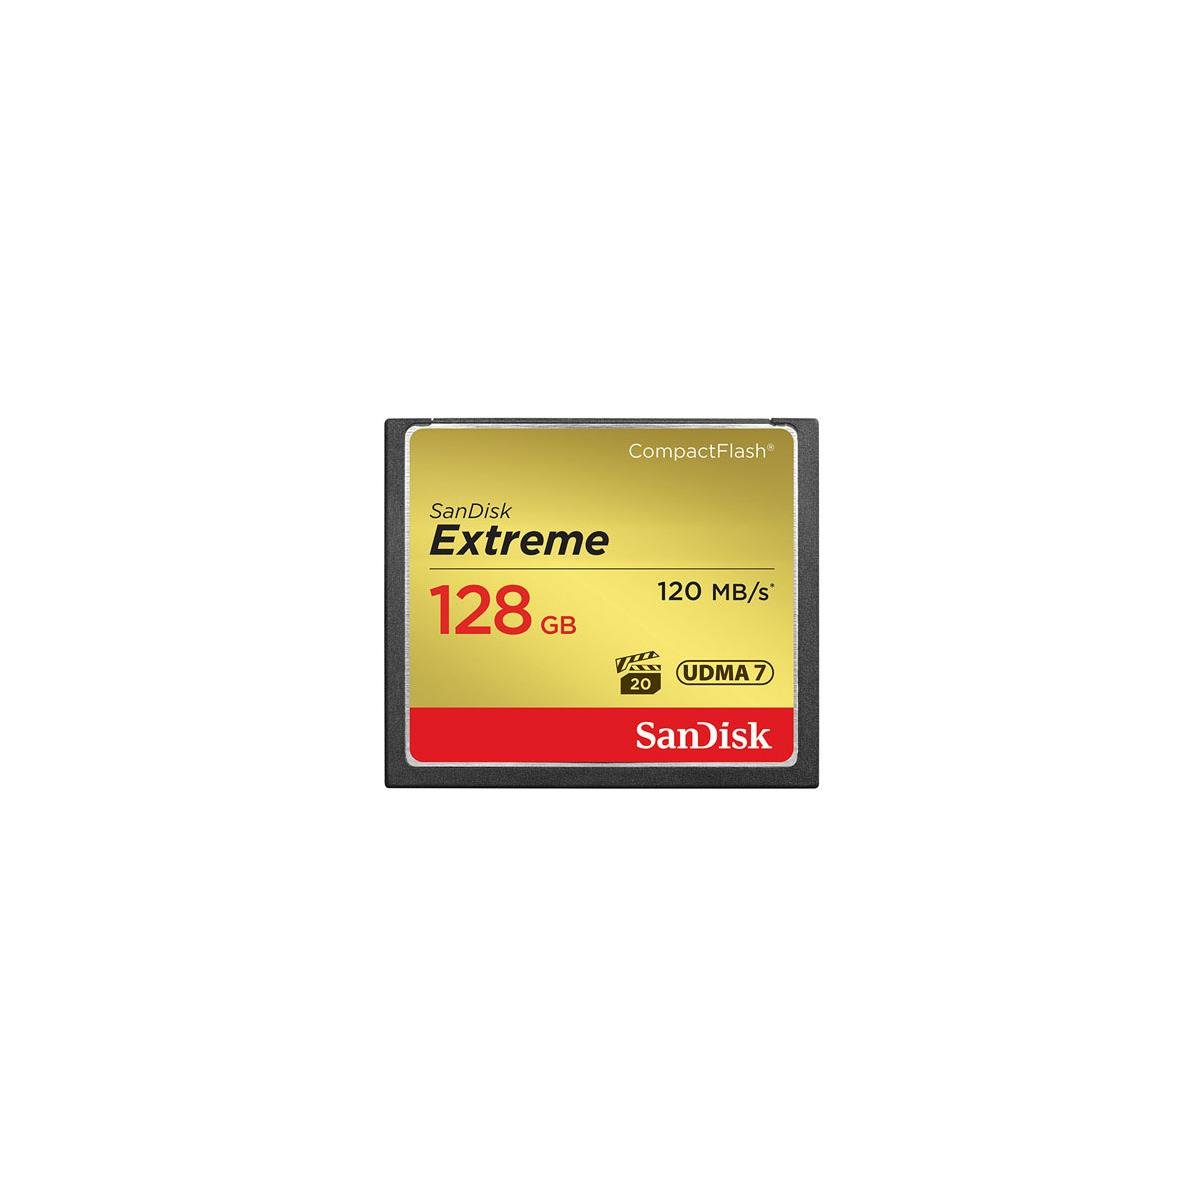 SanDisk 128GB Extreme Compact Flash Memory Card, Transfer speed up to 120MB/s - Bundle With Extreme 128GB UHS-I Class 10 U3 V30 SDXC Memory Card by SanDisk